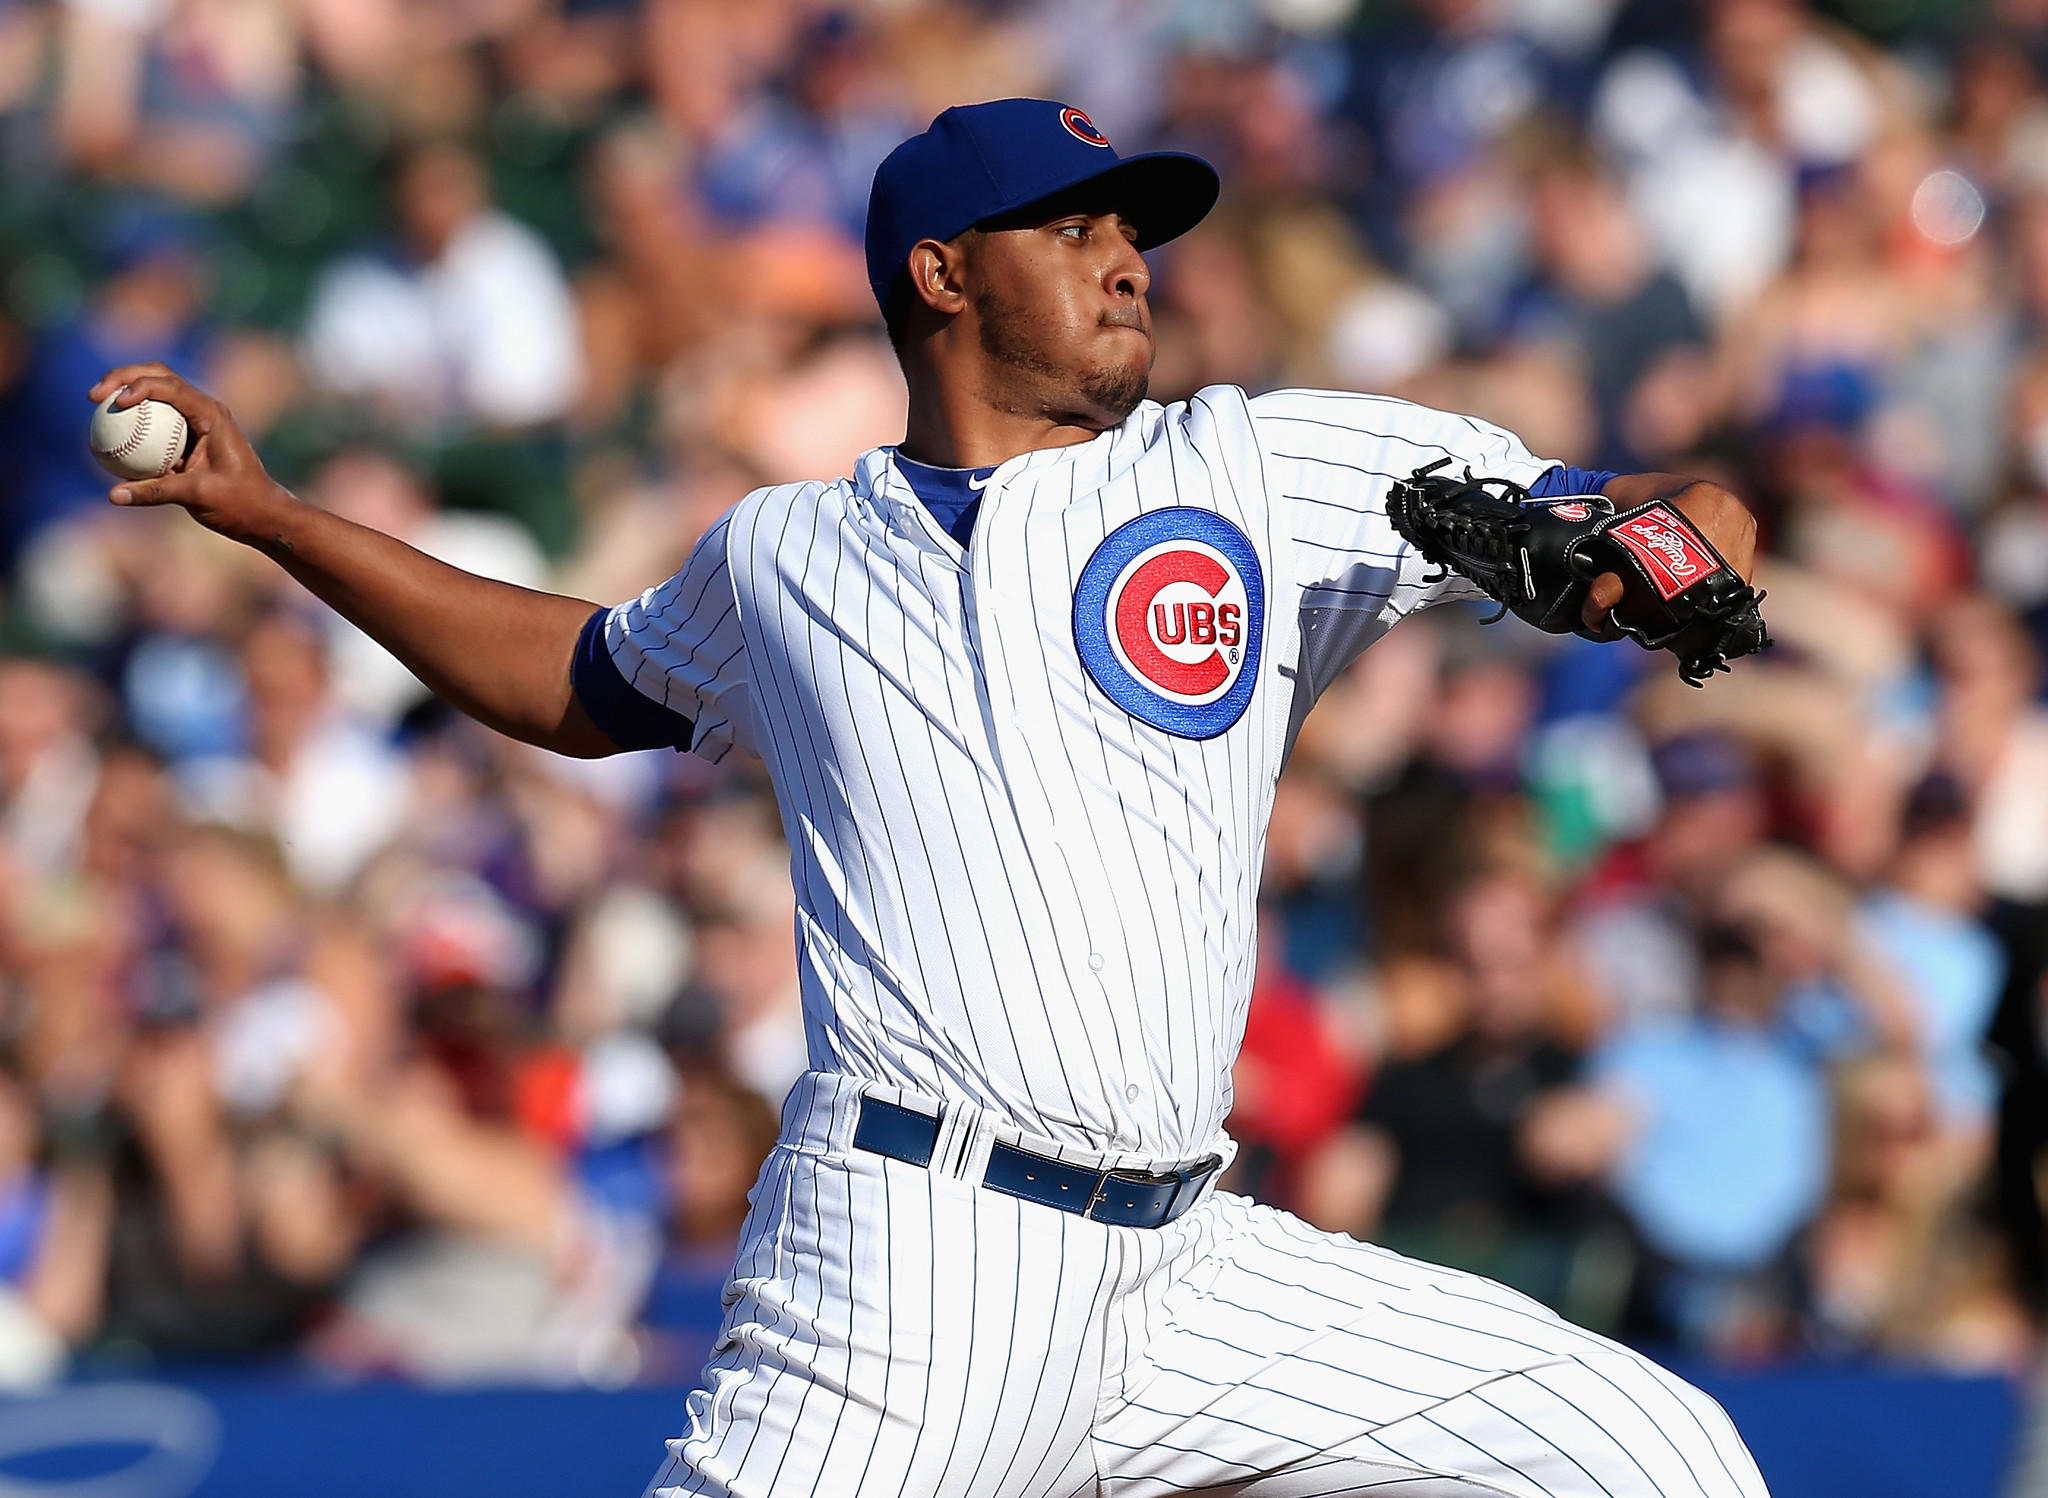 Cubs pitcher Hector Rondon